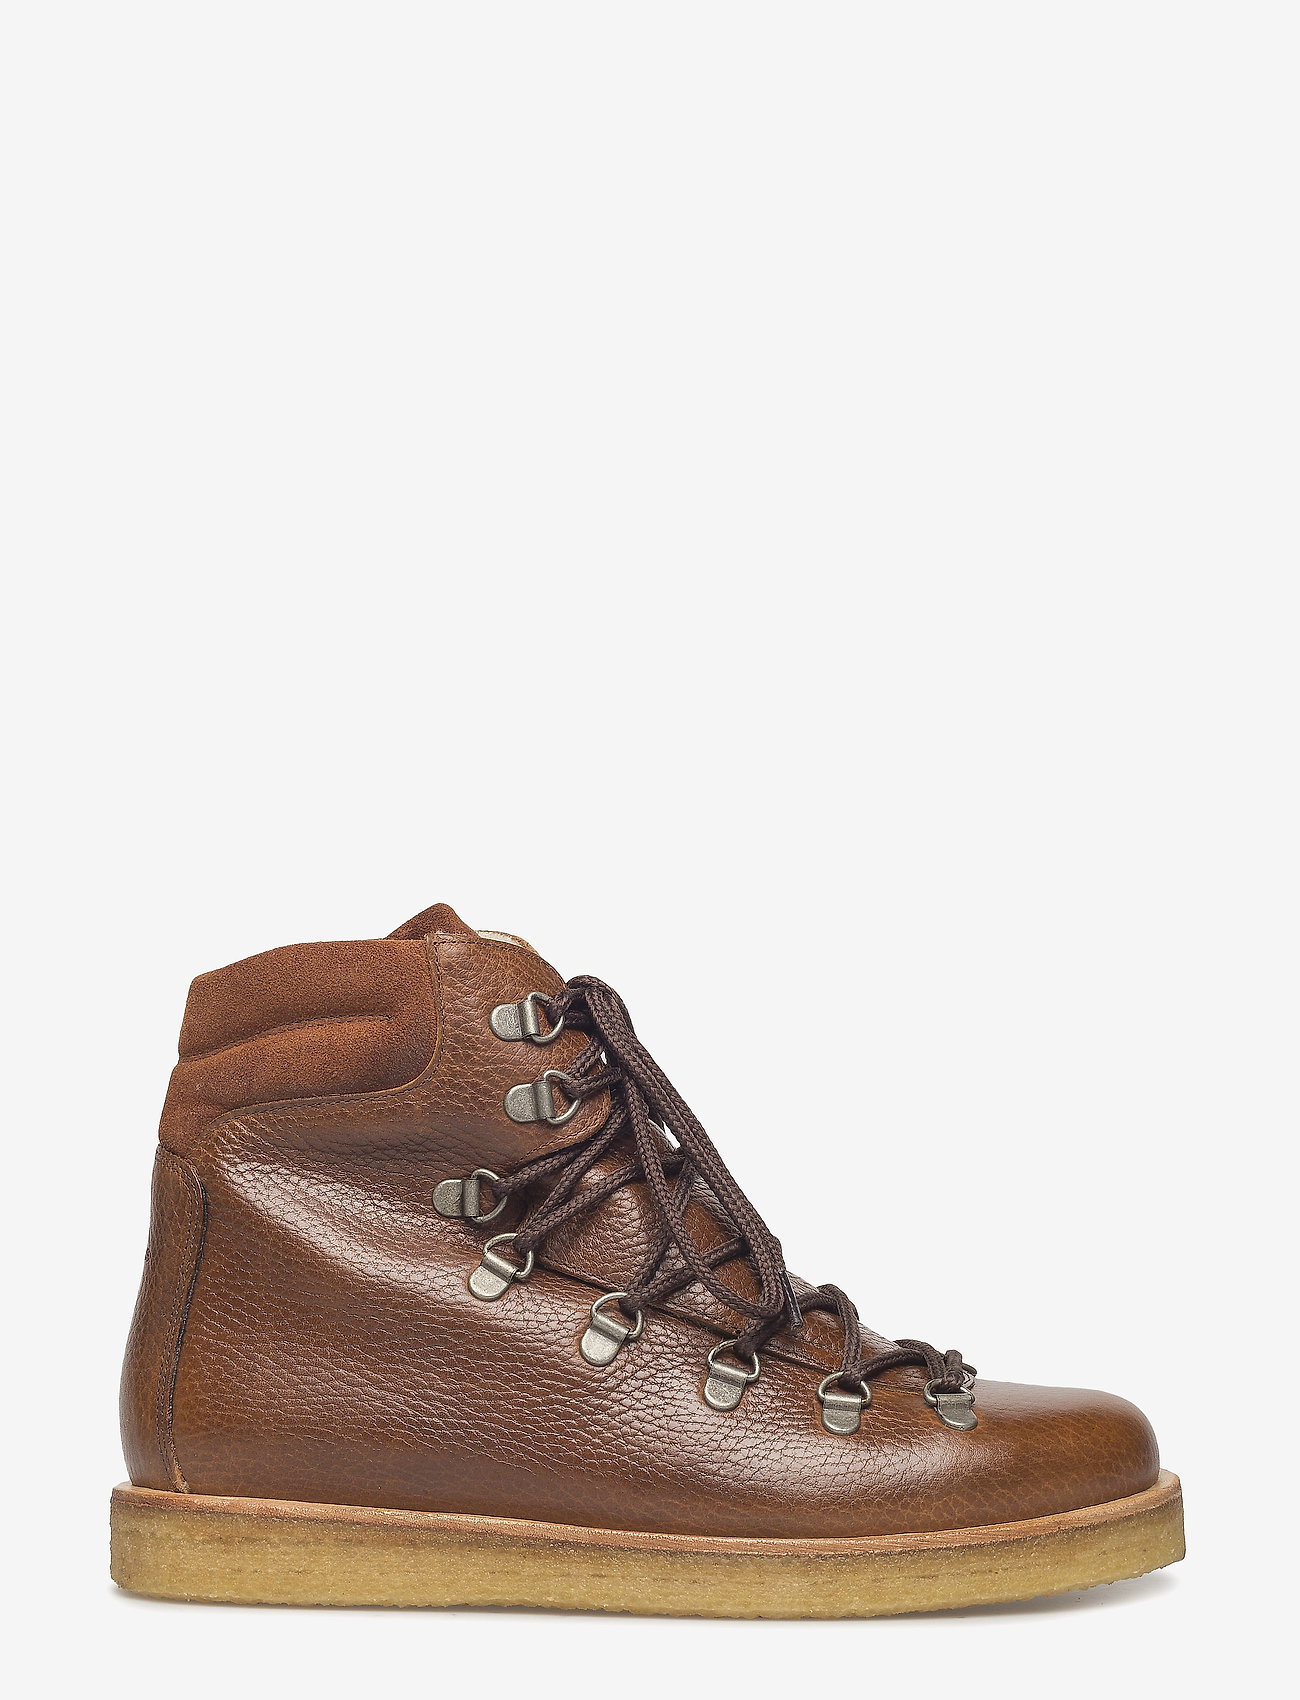 ANGULUS - Boots - flat - with laces - flade ankelstøvler - 2509/1166 medium brown/cognac - 1